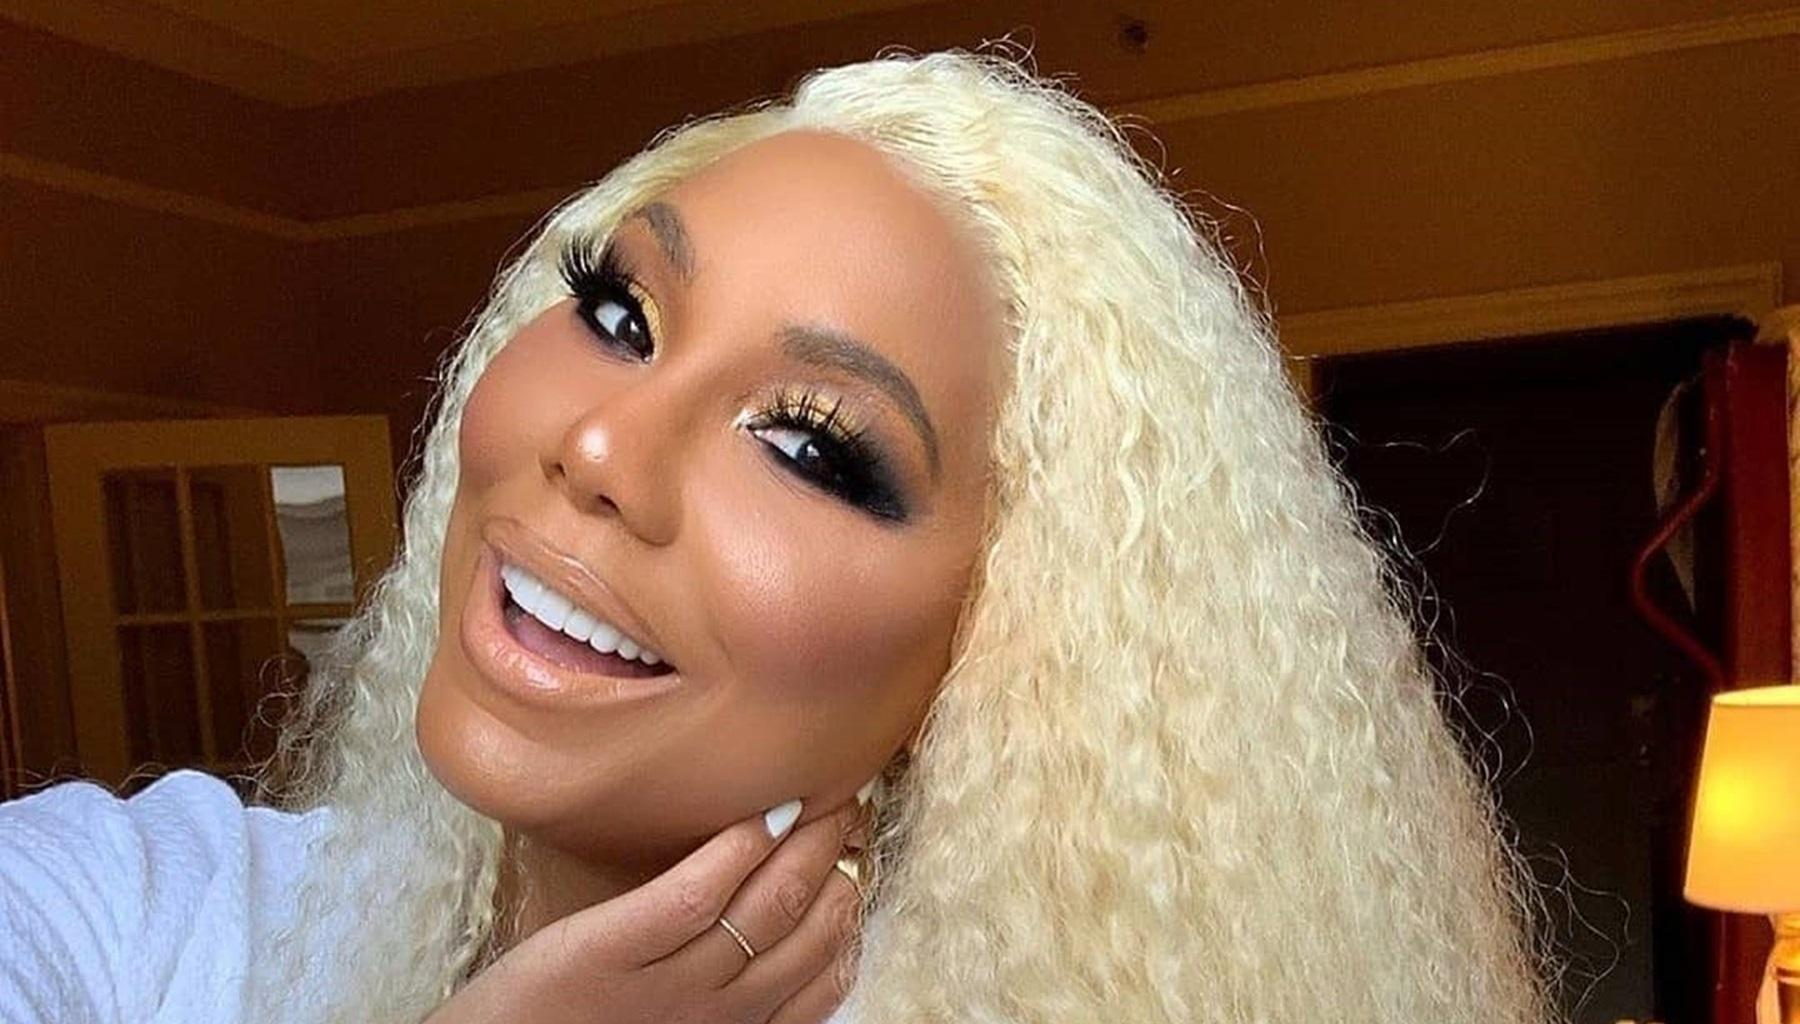 Tamar Braxton Gets Honest About Going Too Far For The Sake Of Beauty With New Photo